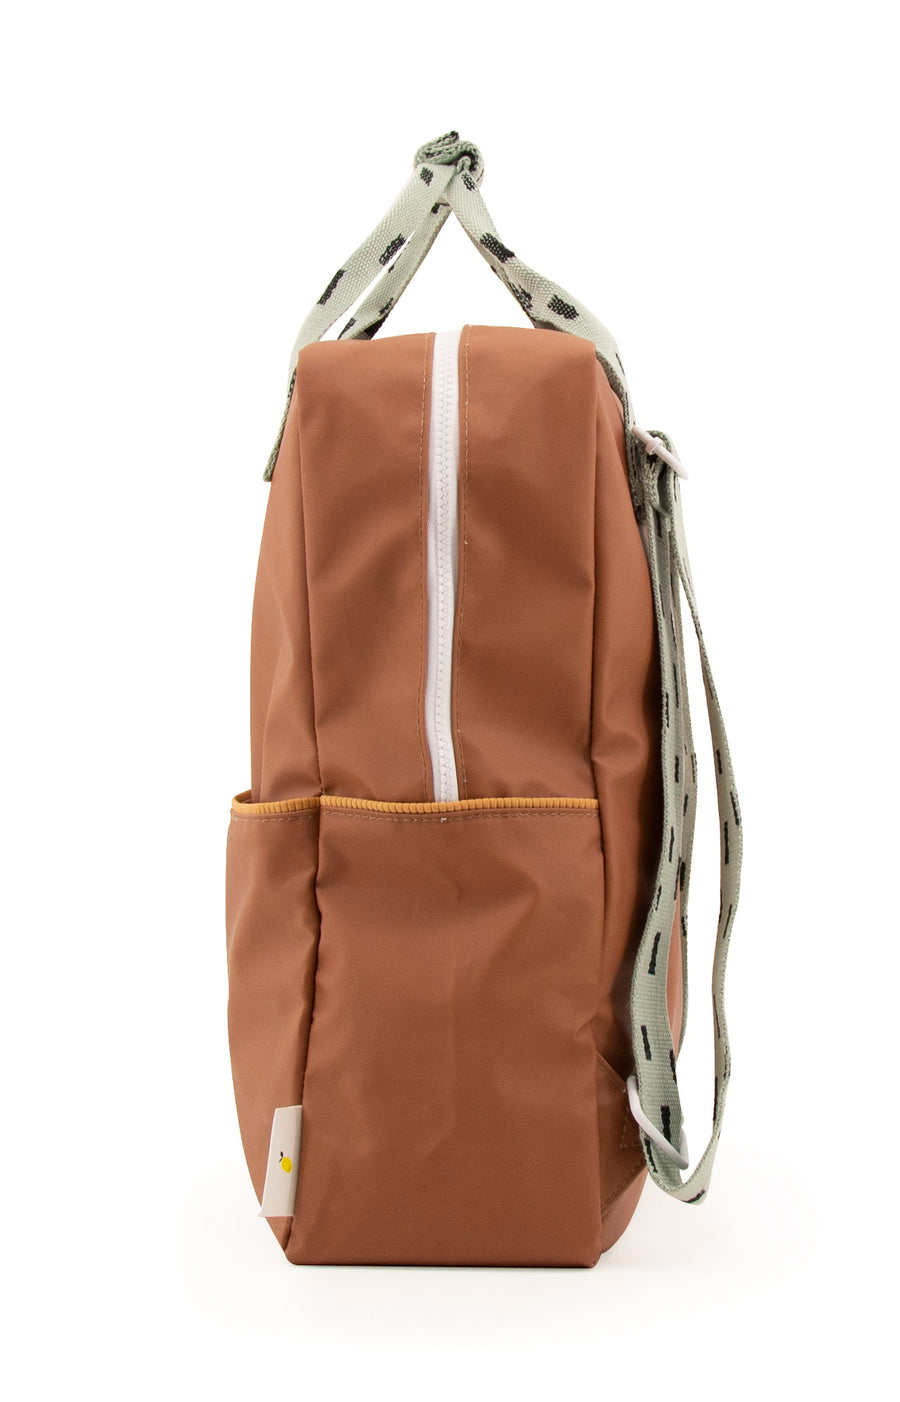 Sticky Lemon Sprinkles Collection Large Backpack, Cinnamon Brown/Sage Green/Cantaloupe